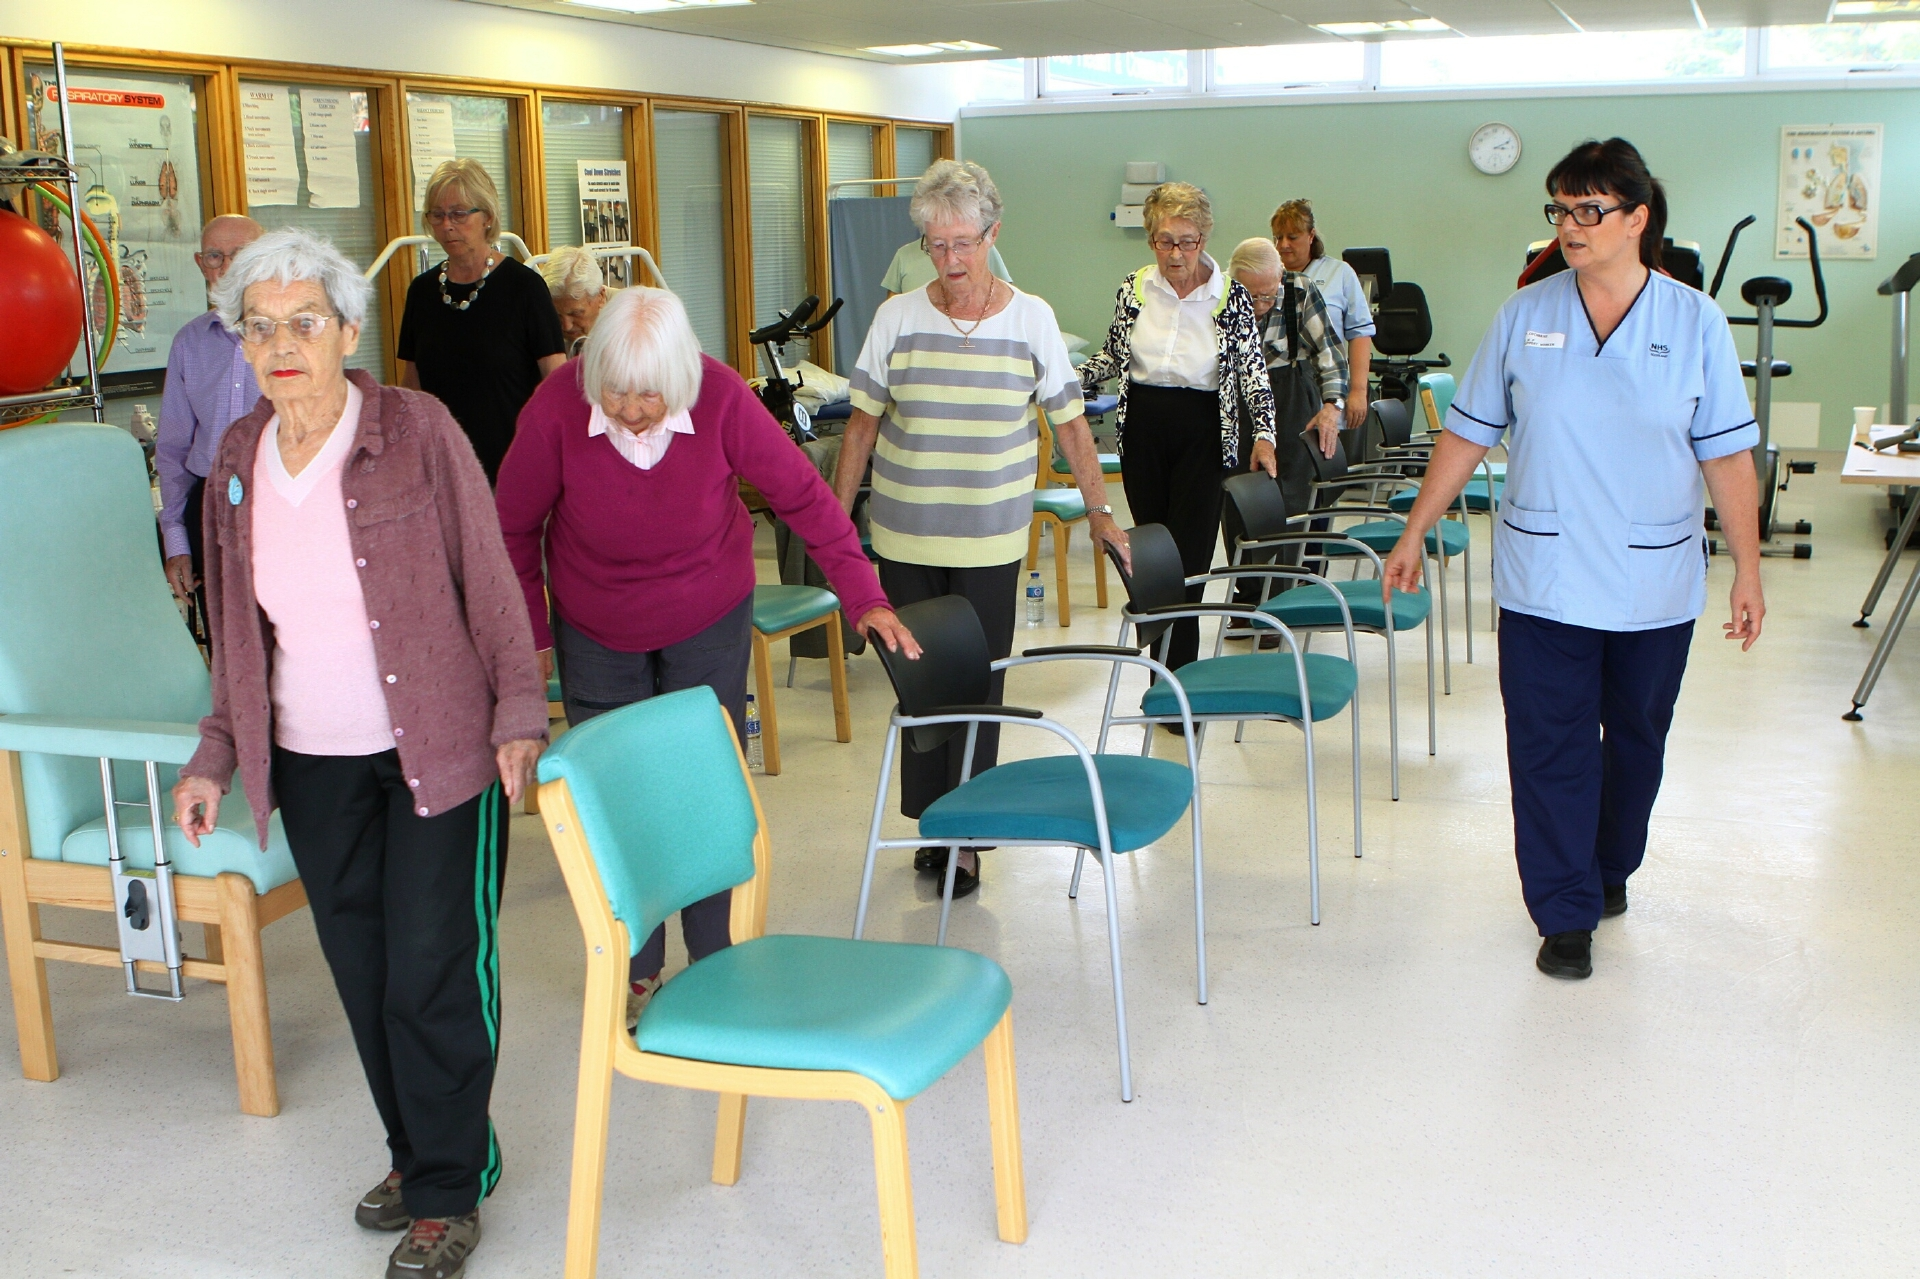 The Falls Prevention Group at Kings Cross Health & Community Care Centre in Dundee.